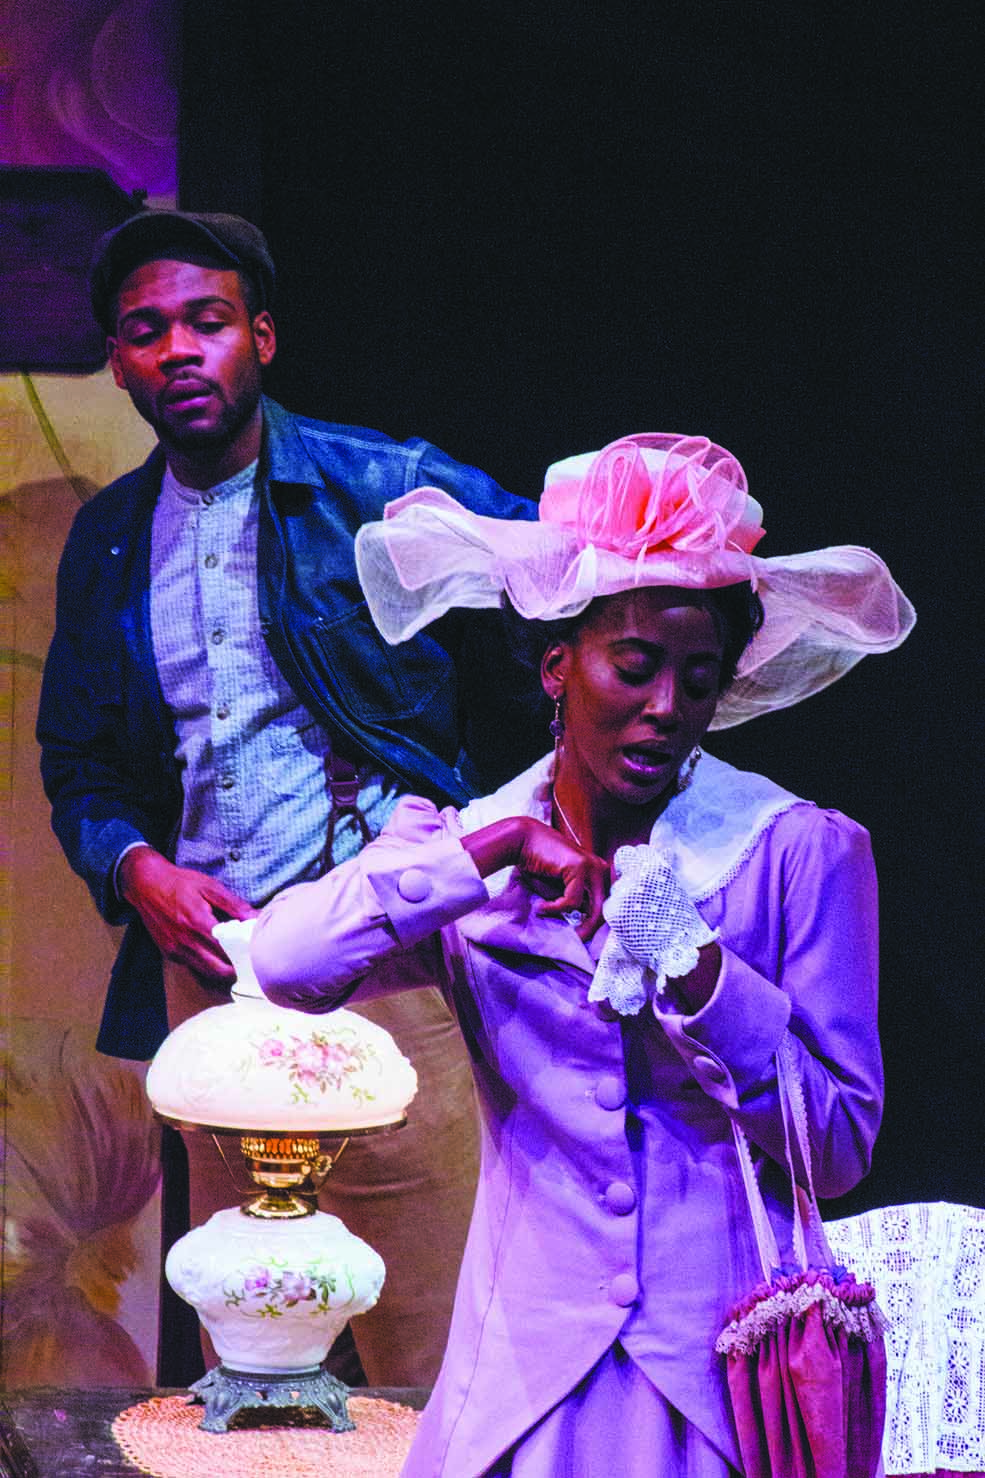 joe turner come and gone Joe turner's come and gone is a play by american playwright august wilson it is the second installment of his decade-by-decade chronicle of the african-american.